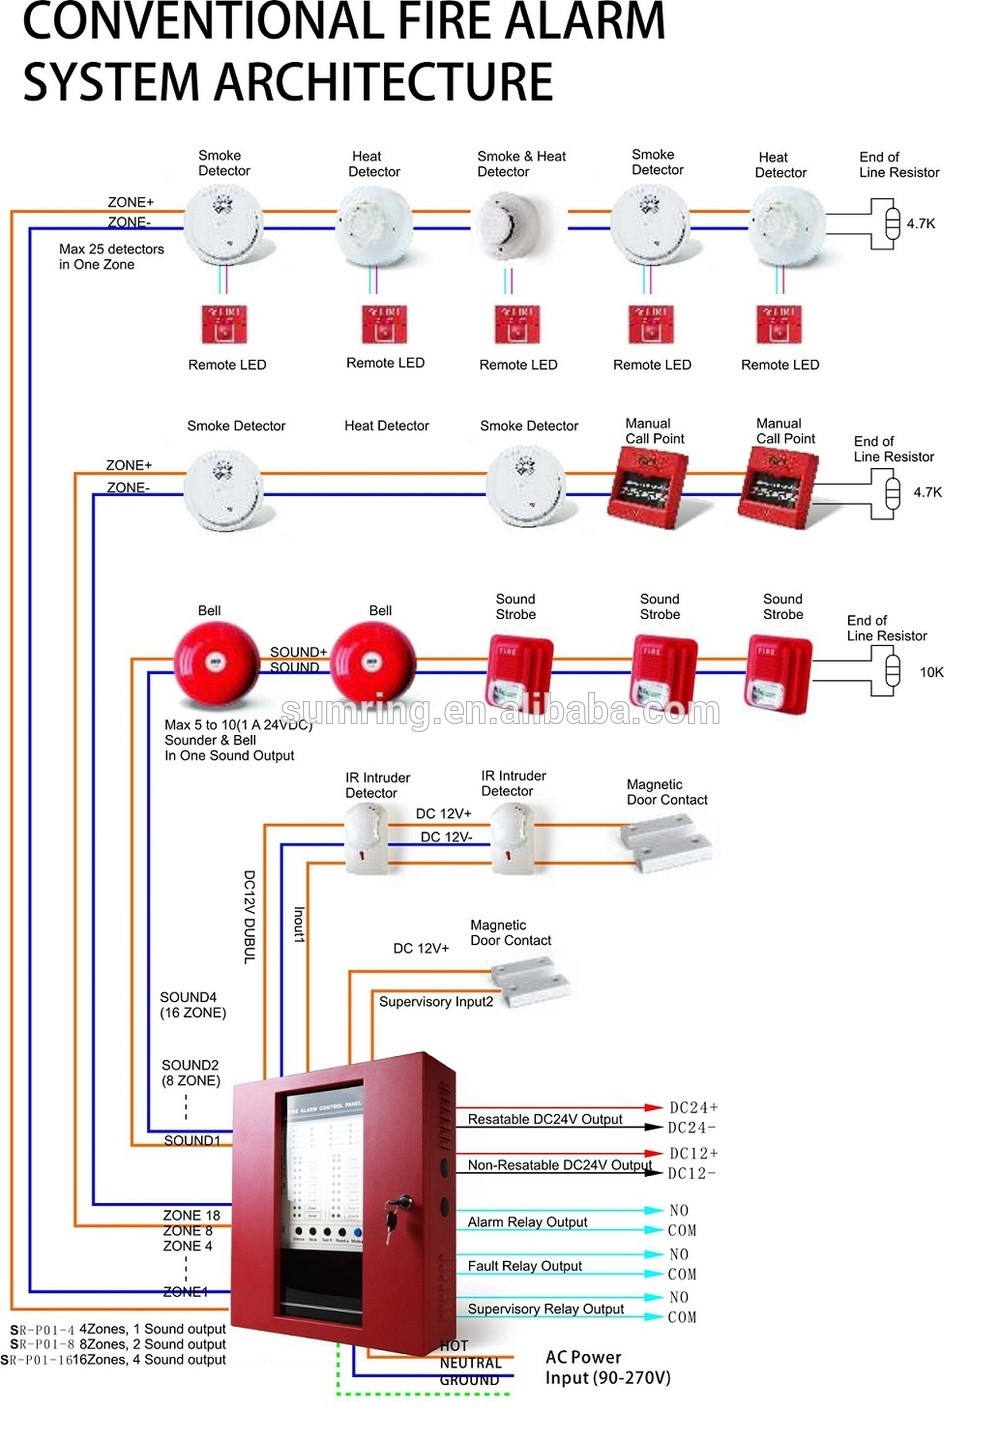 fire alarm pull station wiring diagram Collection-wiring diagram of manual call point save addressable fire alarm best rh releaseganji net edwards fire alarm pull station wiring diagram Ladder Diagrams 6-k